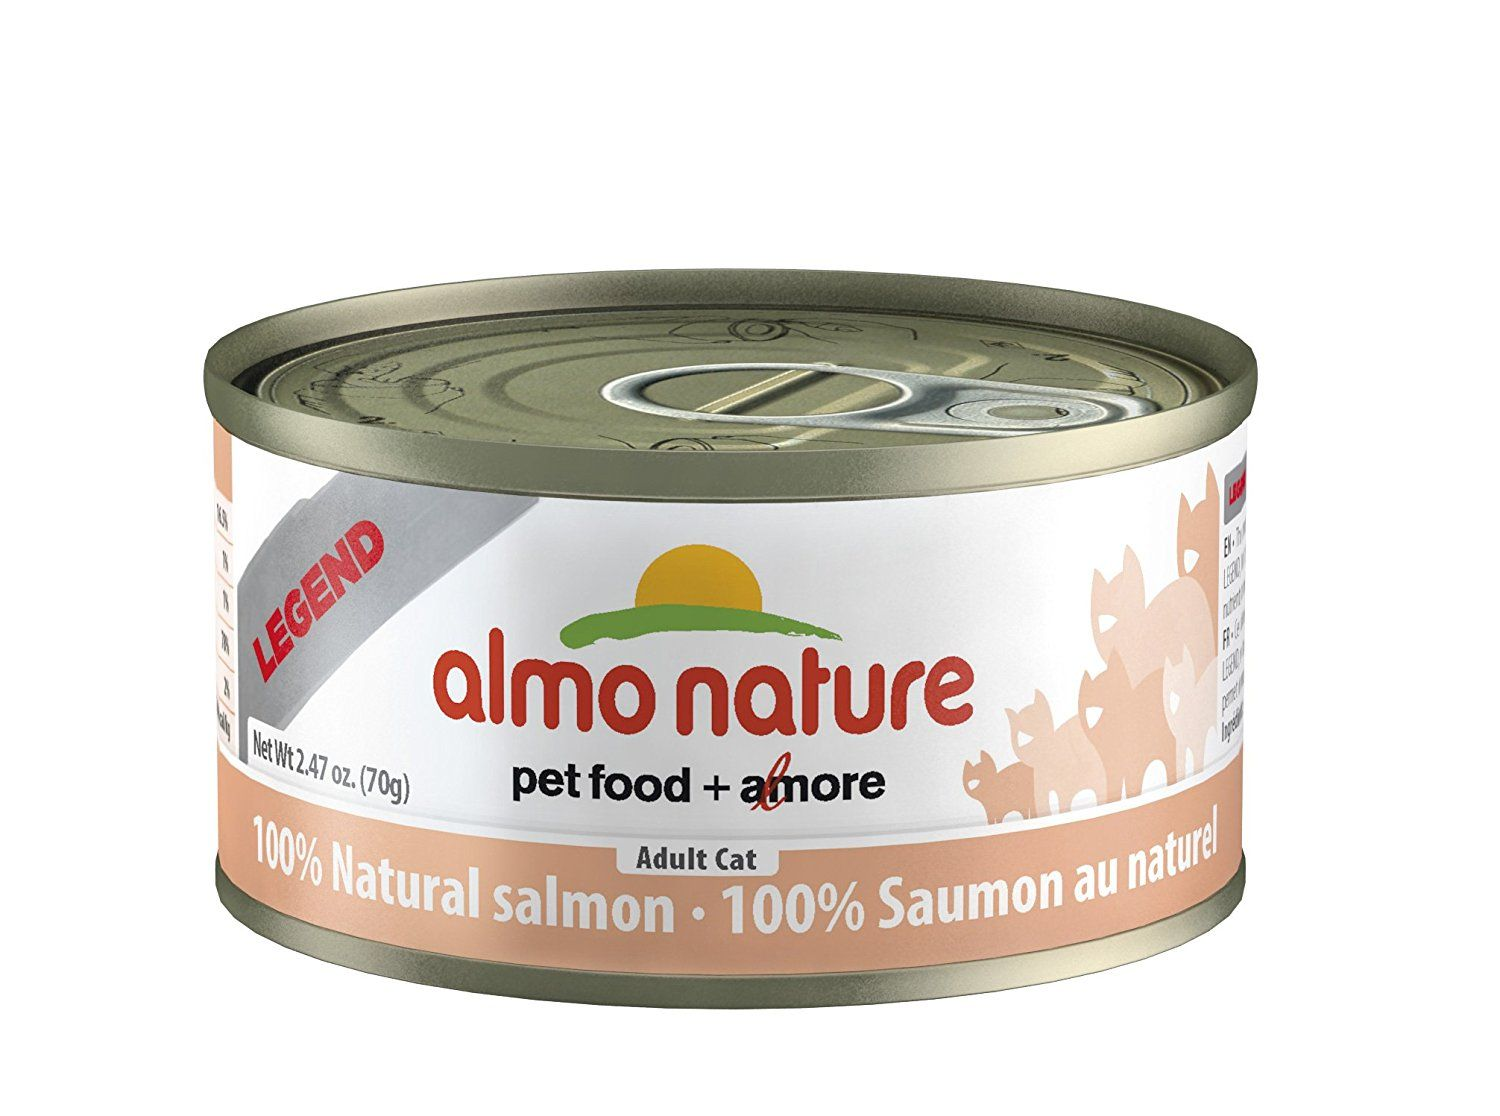 Almo Nature Legend Cat Food 1 Can All Natural No Fillers 16 Healthy Choices Click Image To Review With Images Canned Cat Food Holistic Cat Food Cat Food Coupons